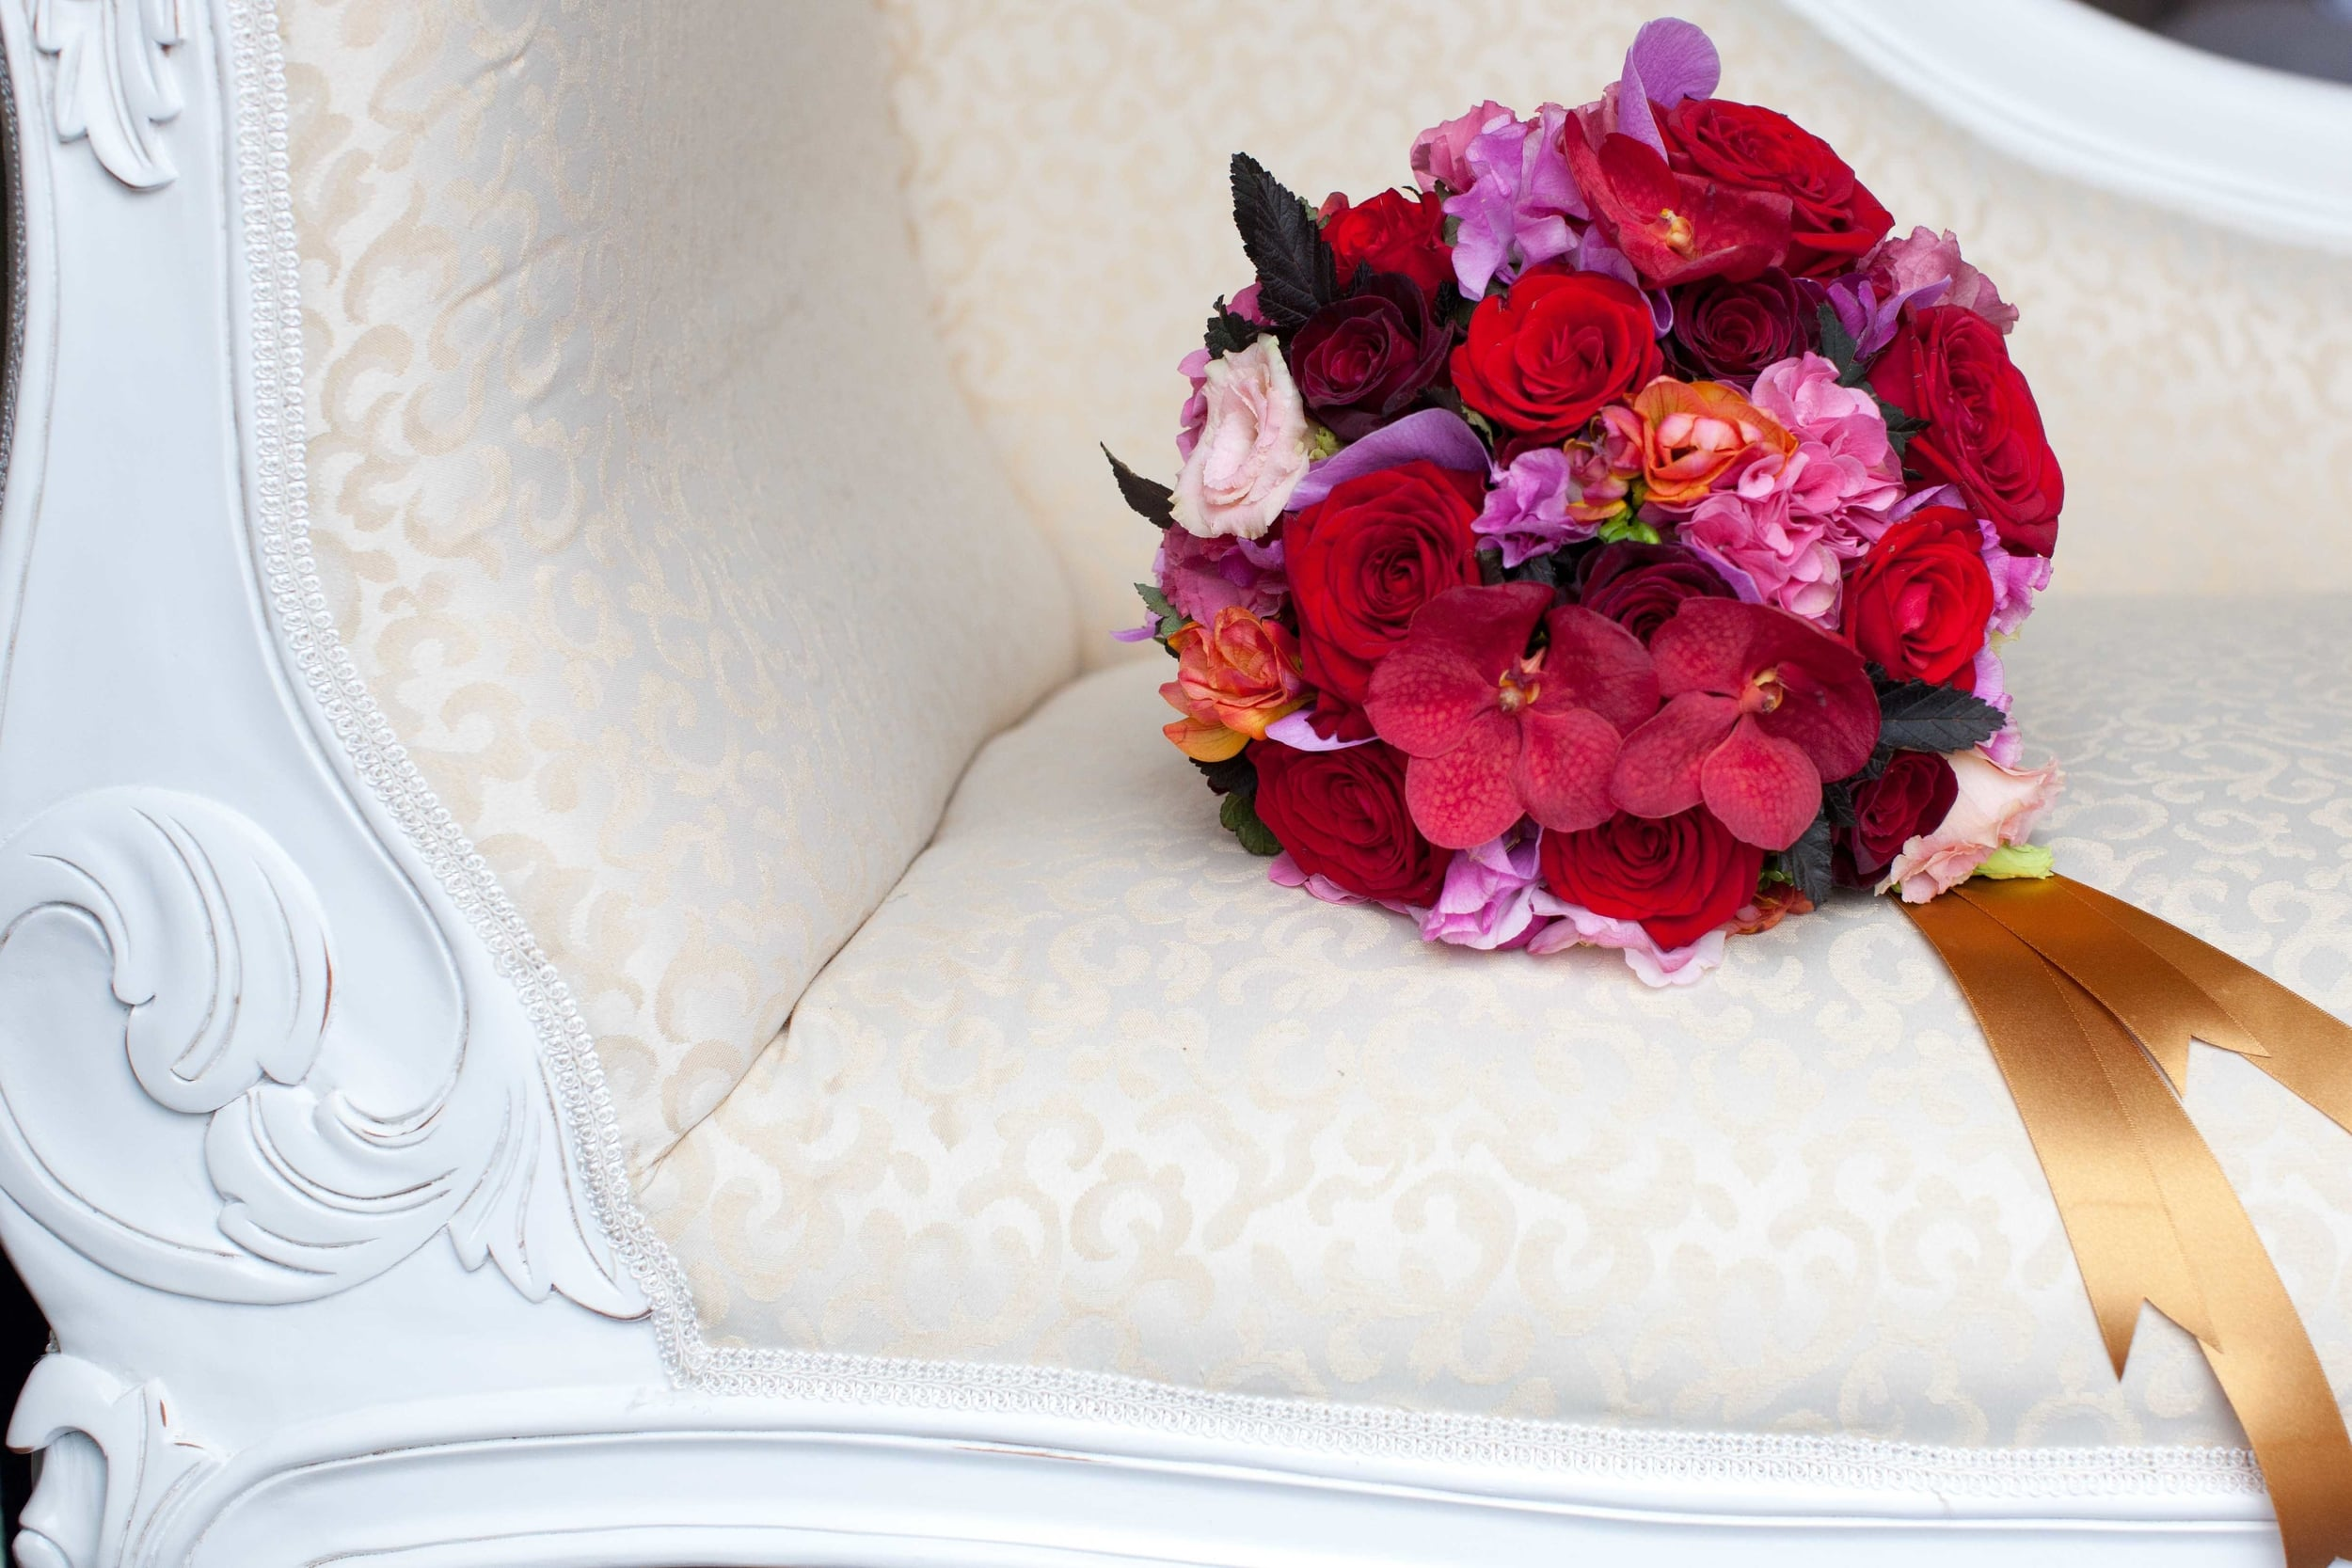 Minnie Bees flowers on a chaise.